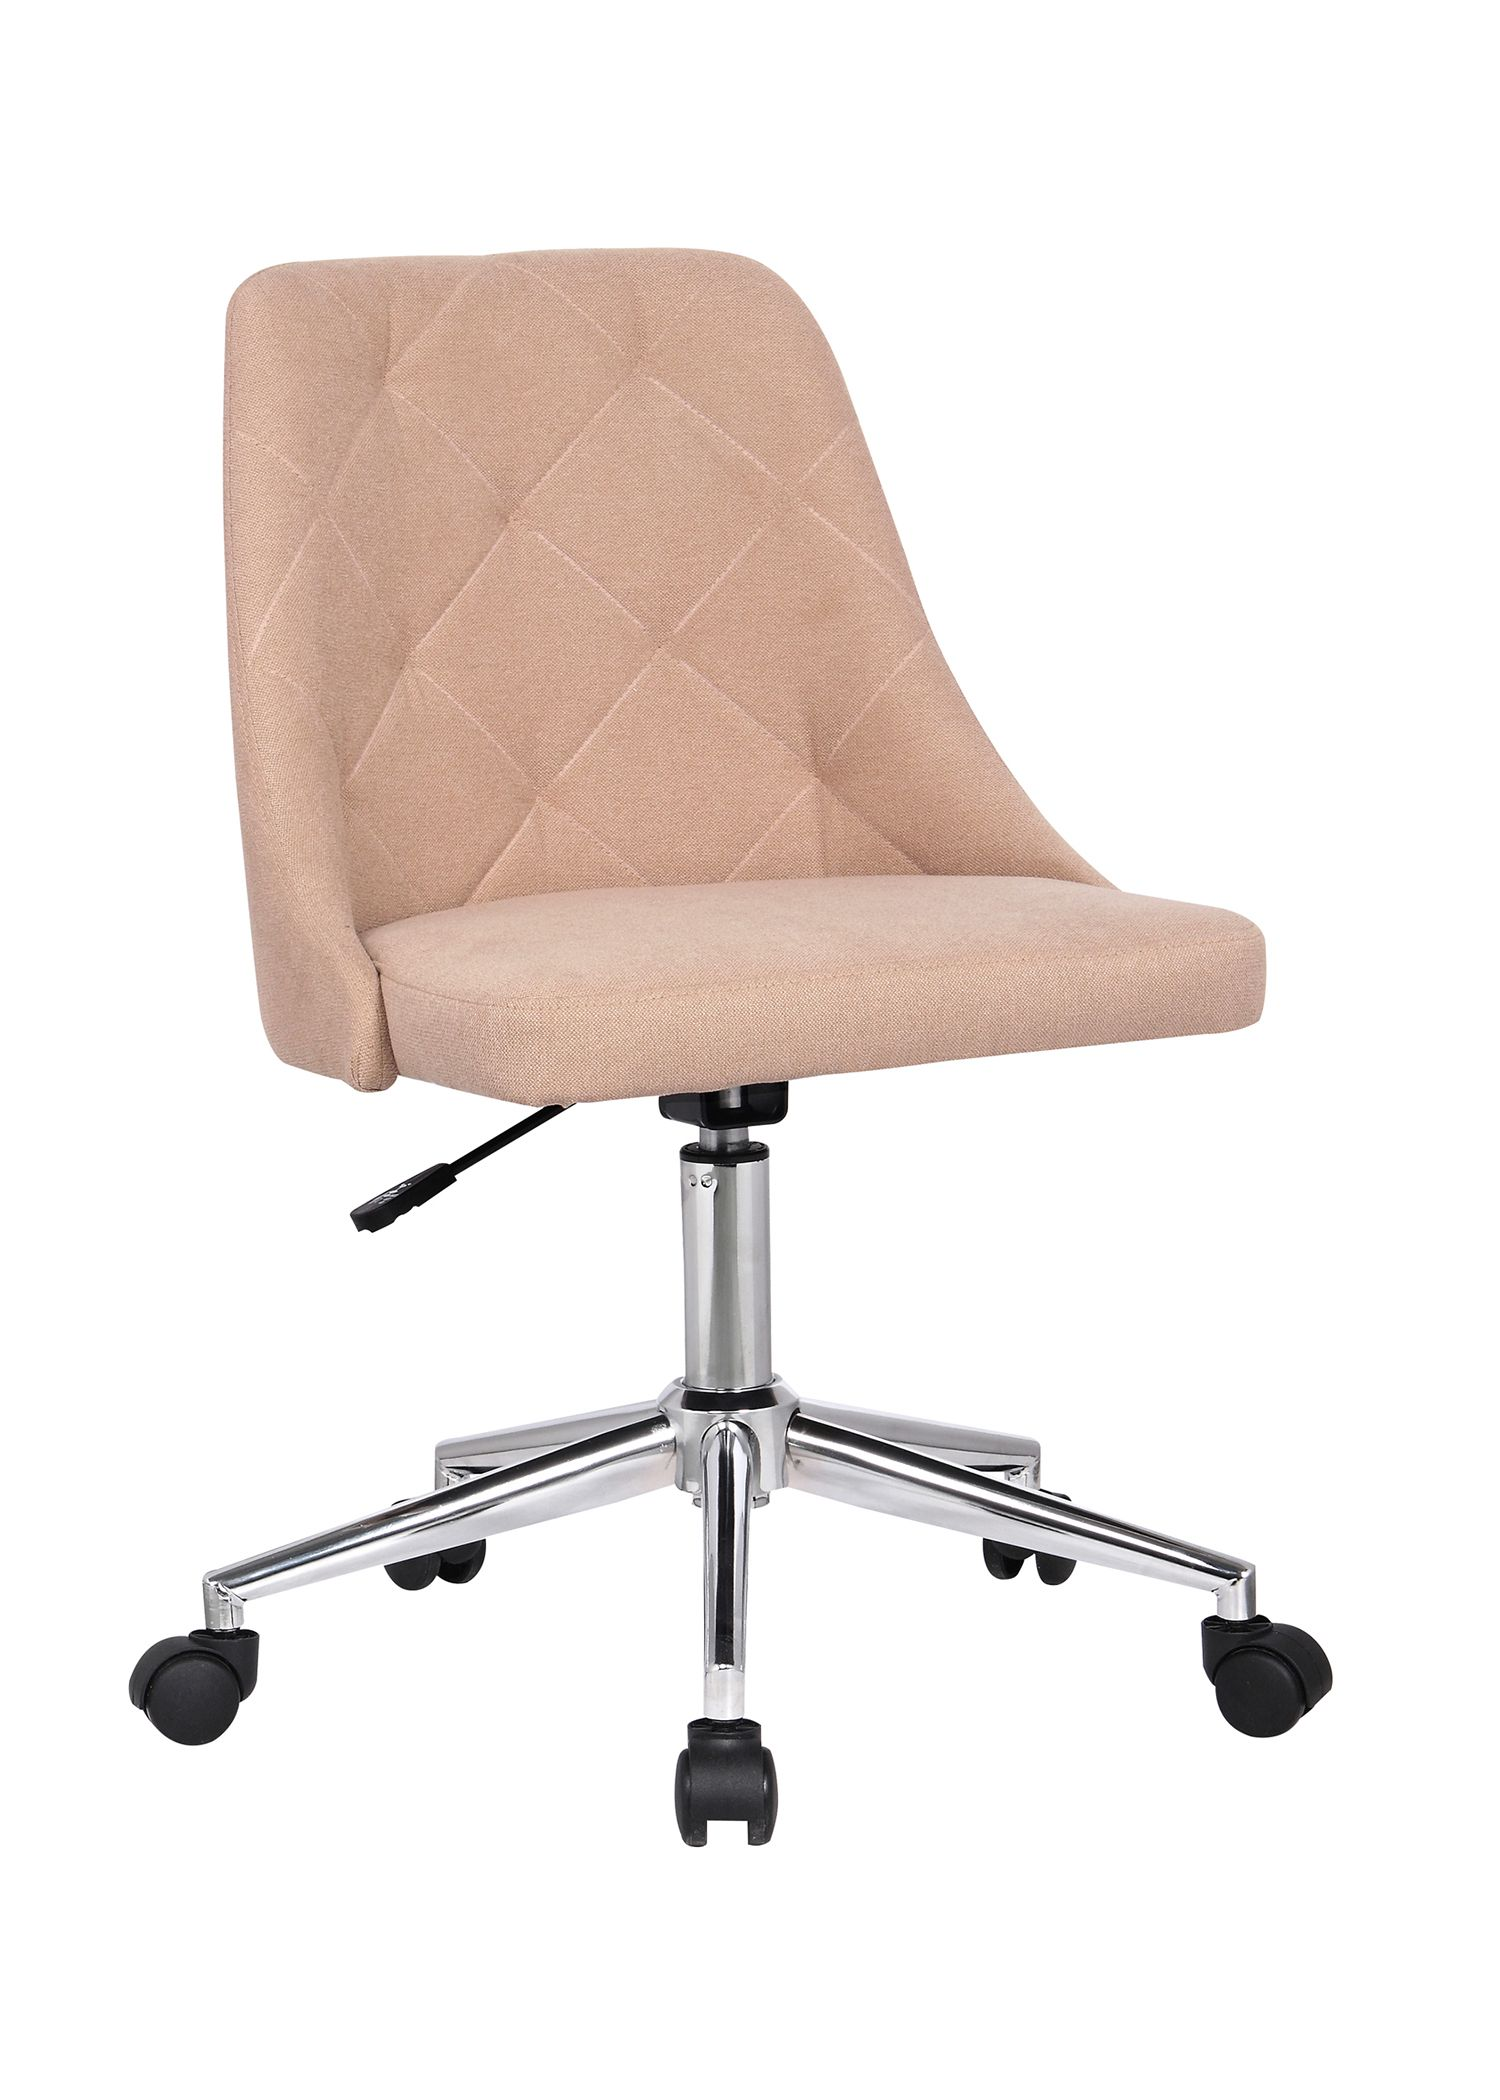 Cool Peach Office Chair Npd Chair Home Decor Furniture Ncnpc Chair Design For Home Ncnpcorg